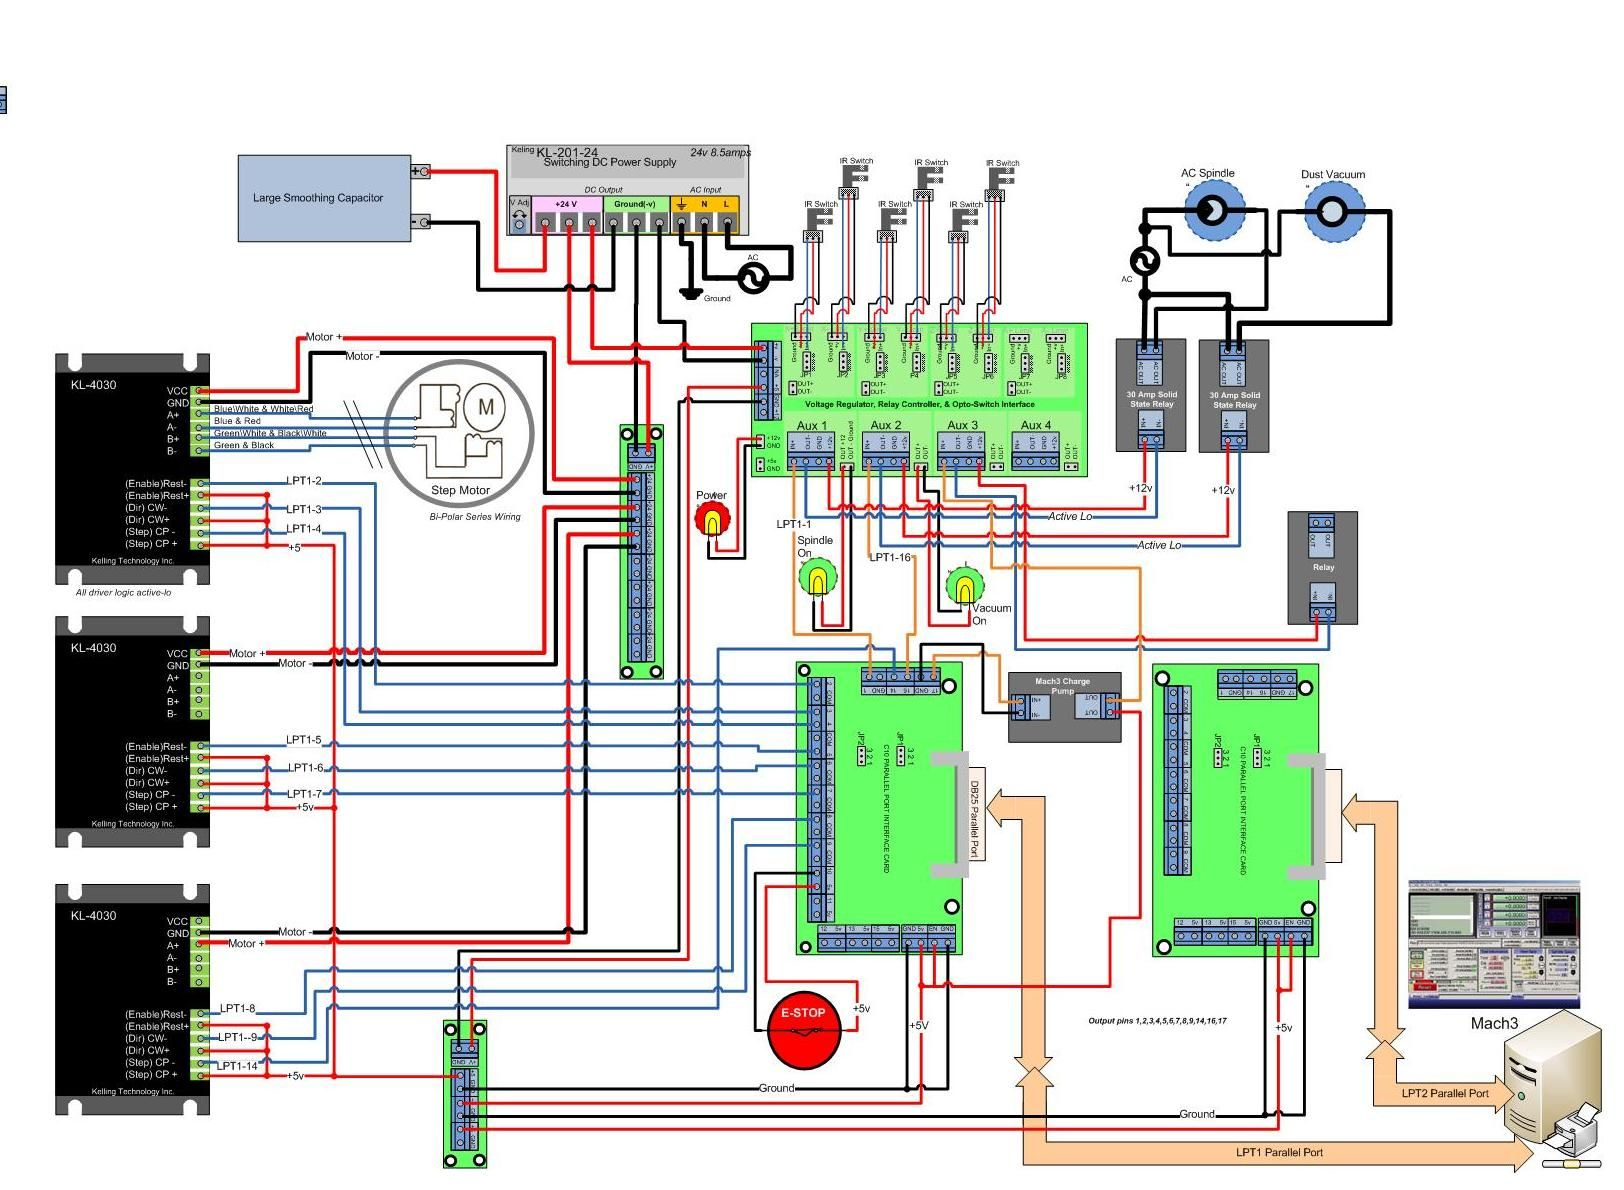 de60b189cc98ab72eeb9d2e3f3d349dc cnc wiring diagram homemade cnc wiring diagram \u2022 wiring diagrams usb cnc controller circuit diagram at gsmx.co